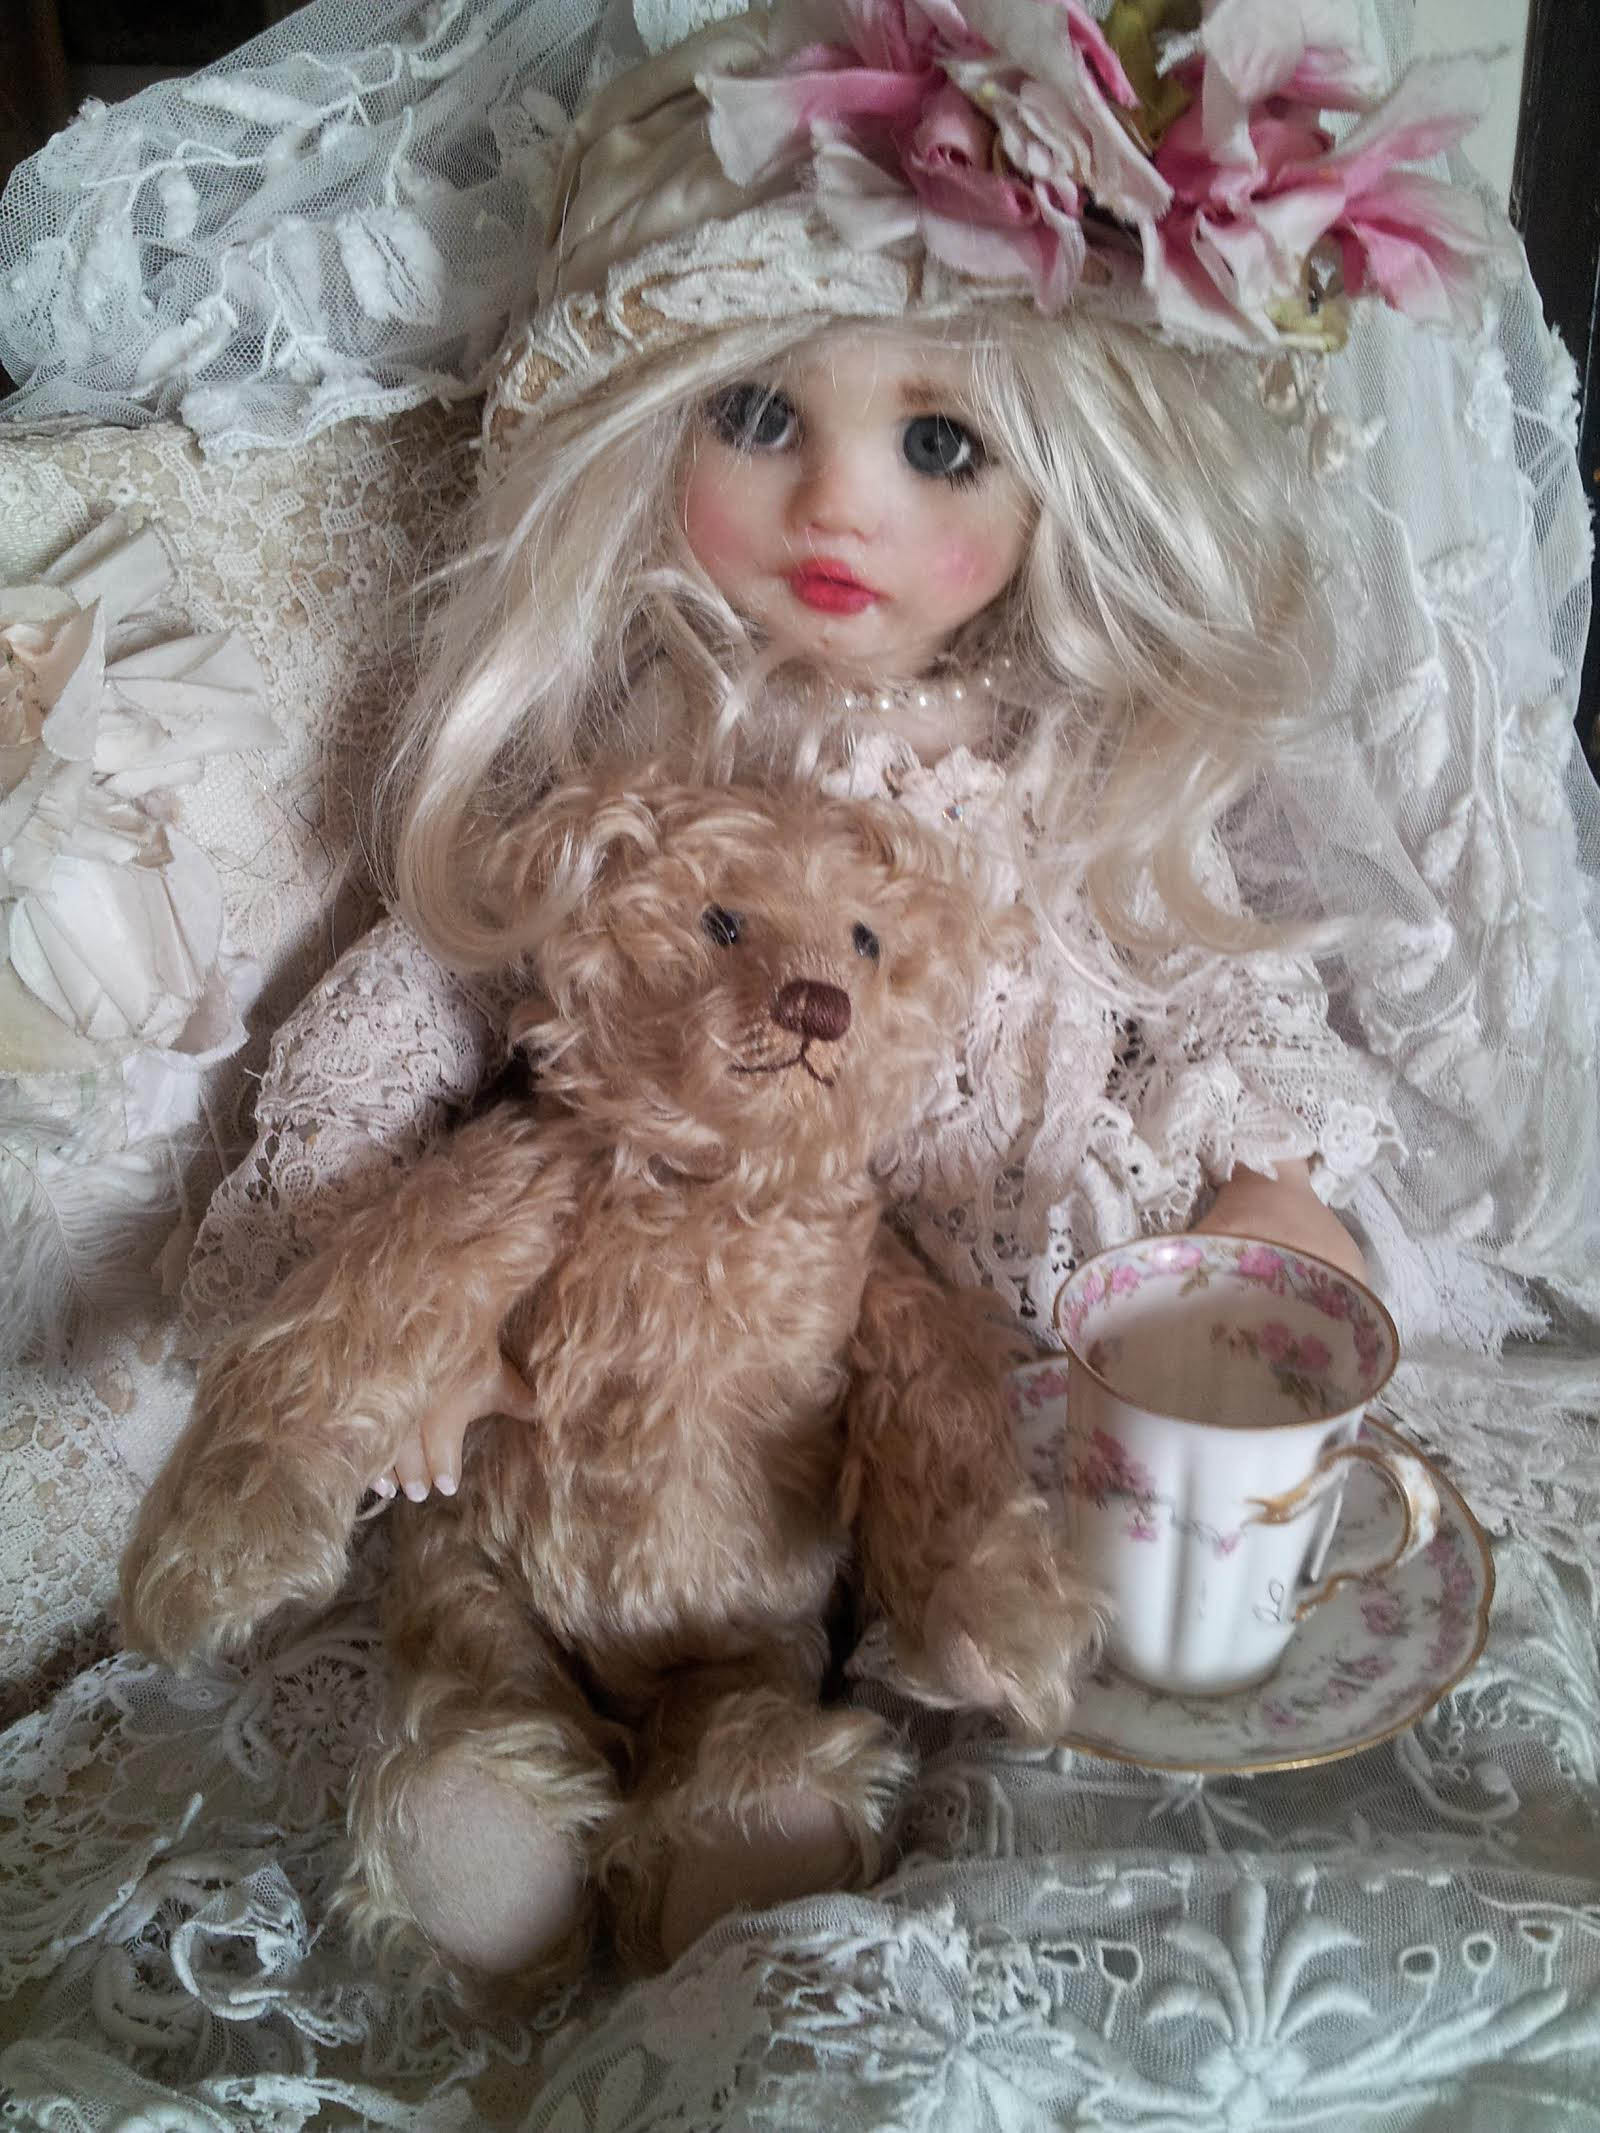 Vintage Shauna Original Cernit Doll by Corinne Layton(Sold)(Will Take Orders)